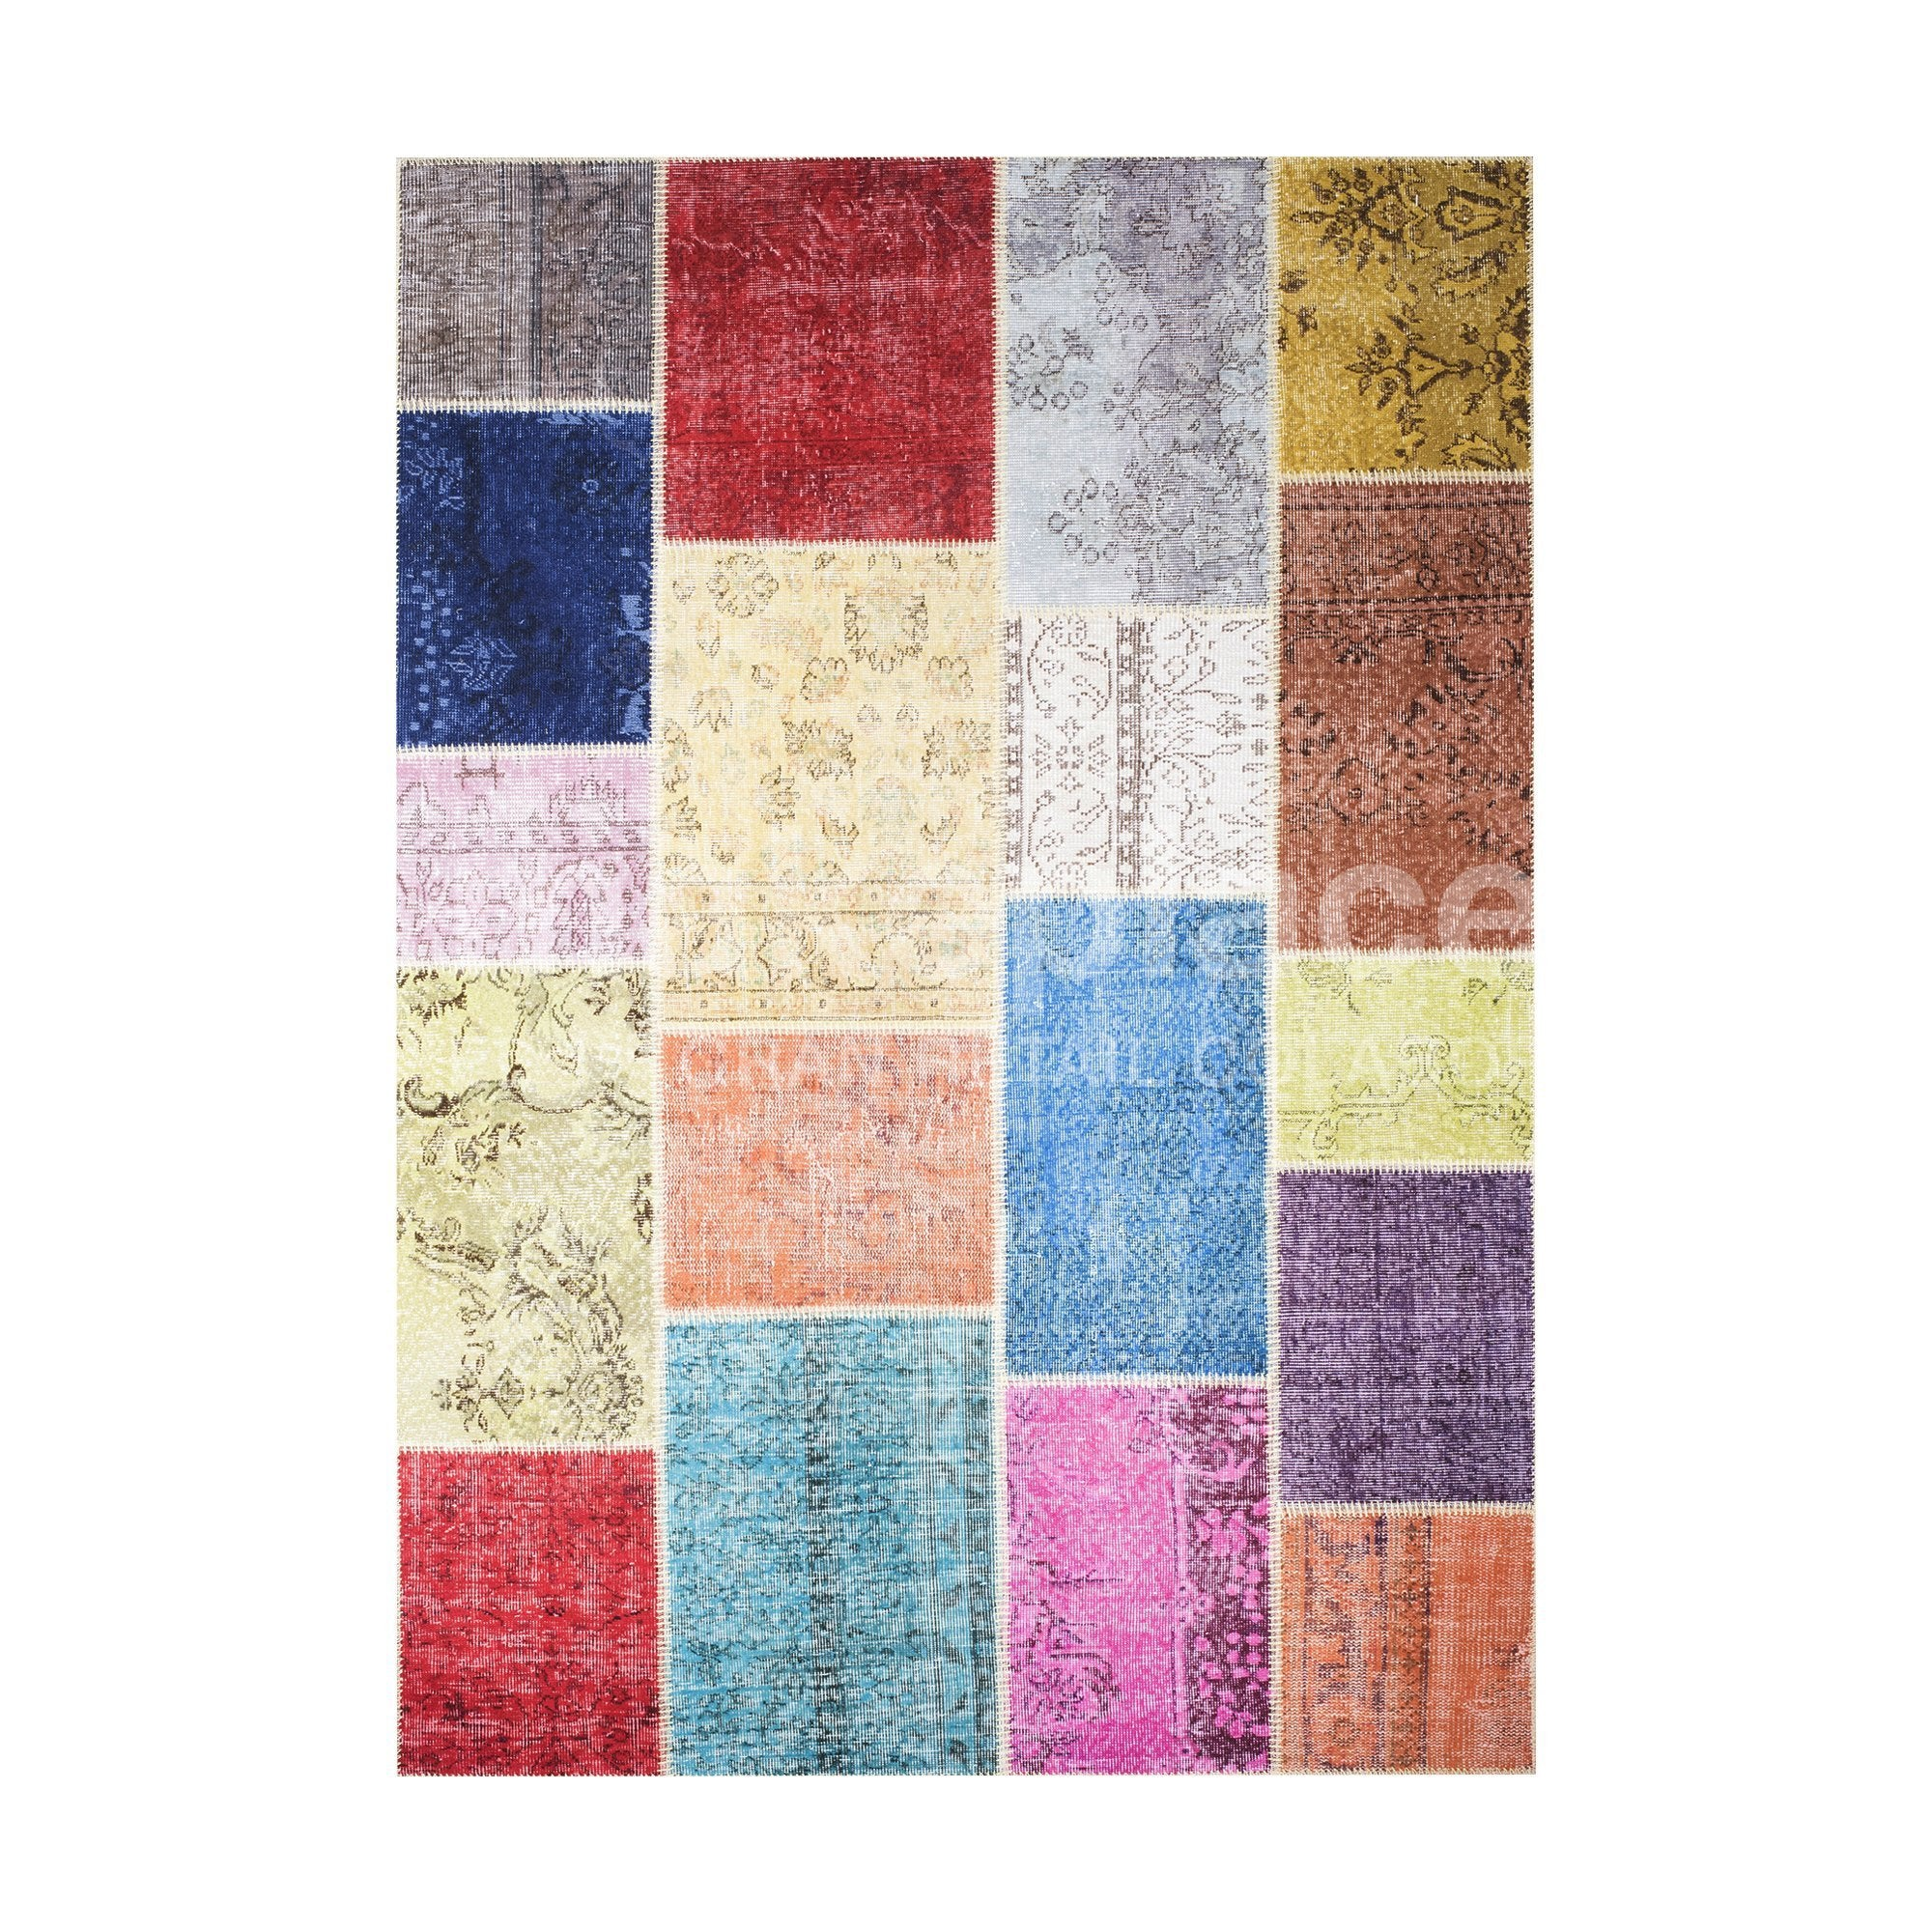 ALFOMBRA PATCHWORK TURCO 170X240 10-05 MULTICOLOR Makeplace